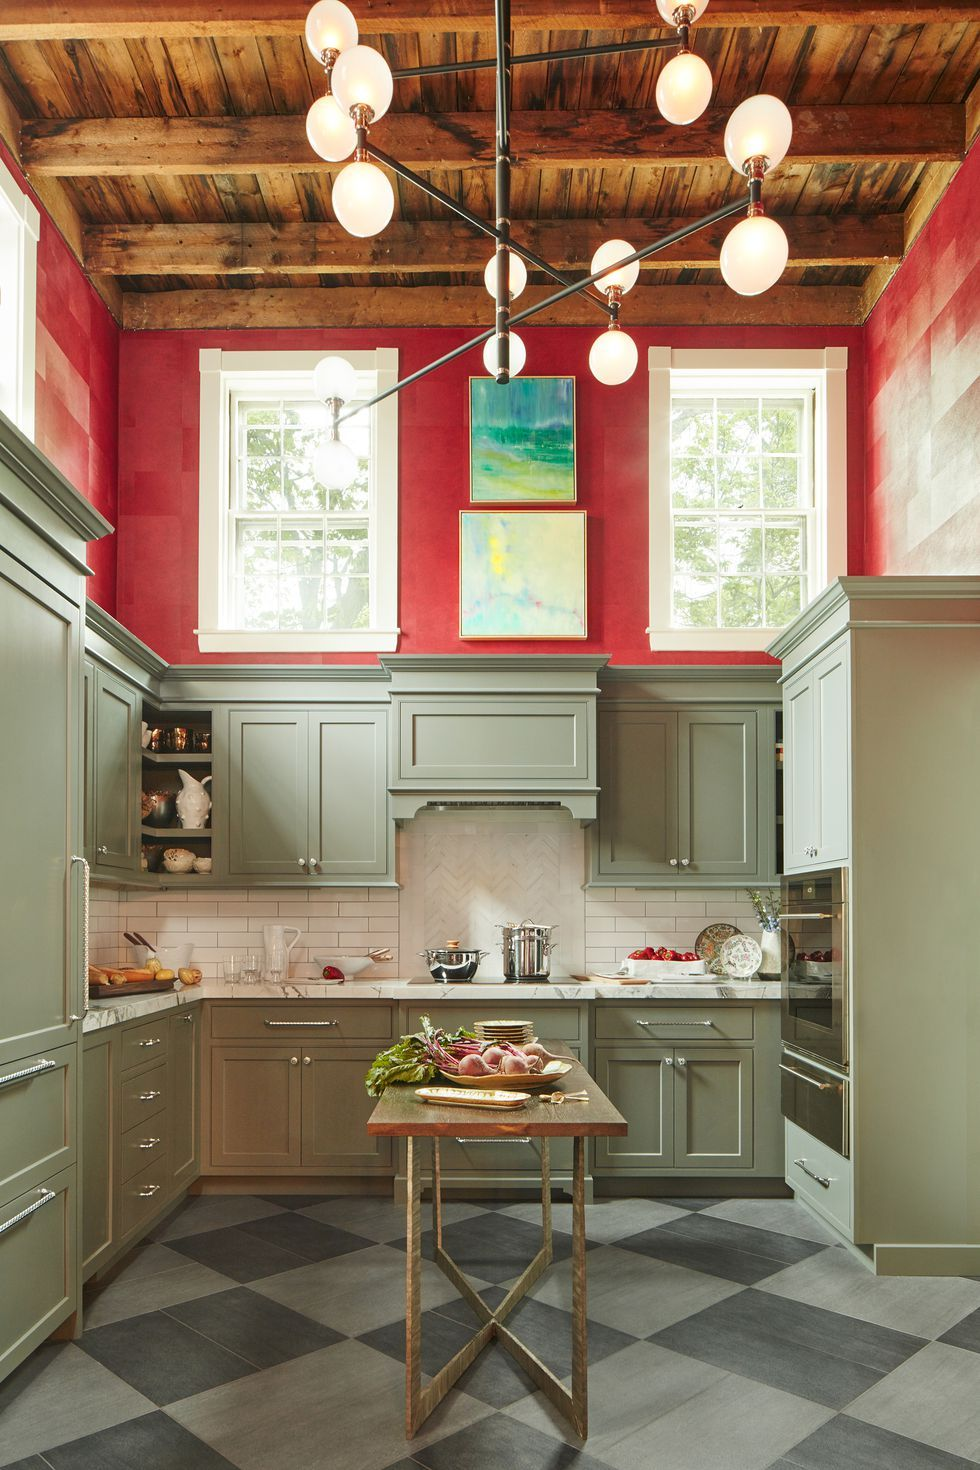 Color clashed kitchen with beautiful wood beamed ceilings